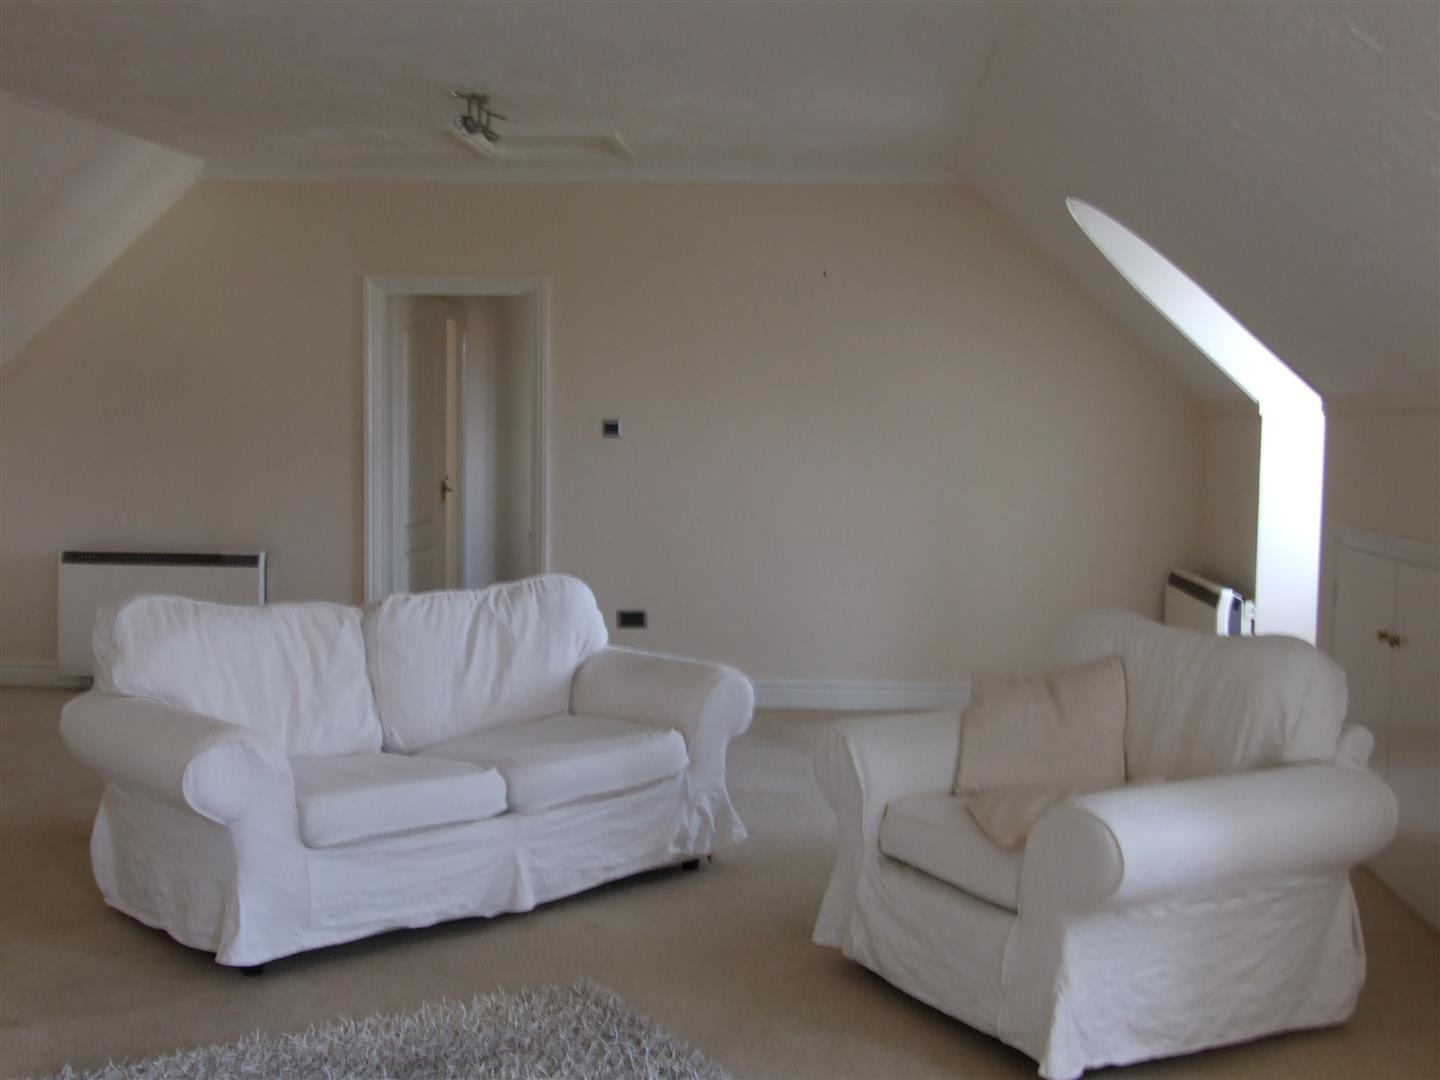 2 bed flat to rent in Long Sutton Spalding, PE12 9RL 2